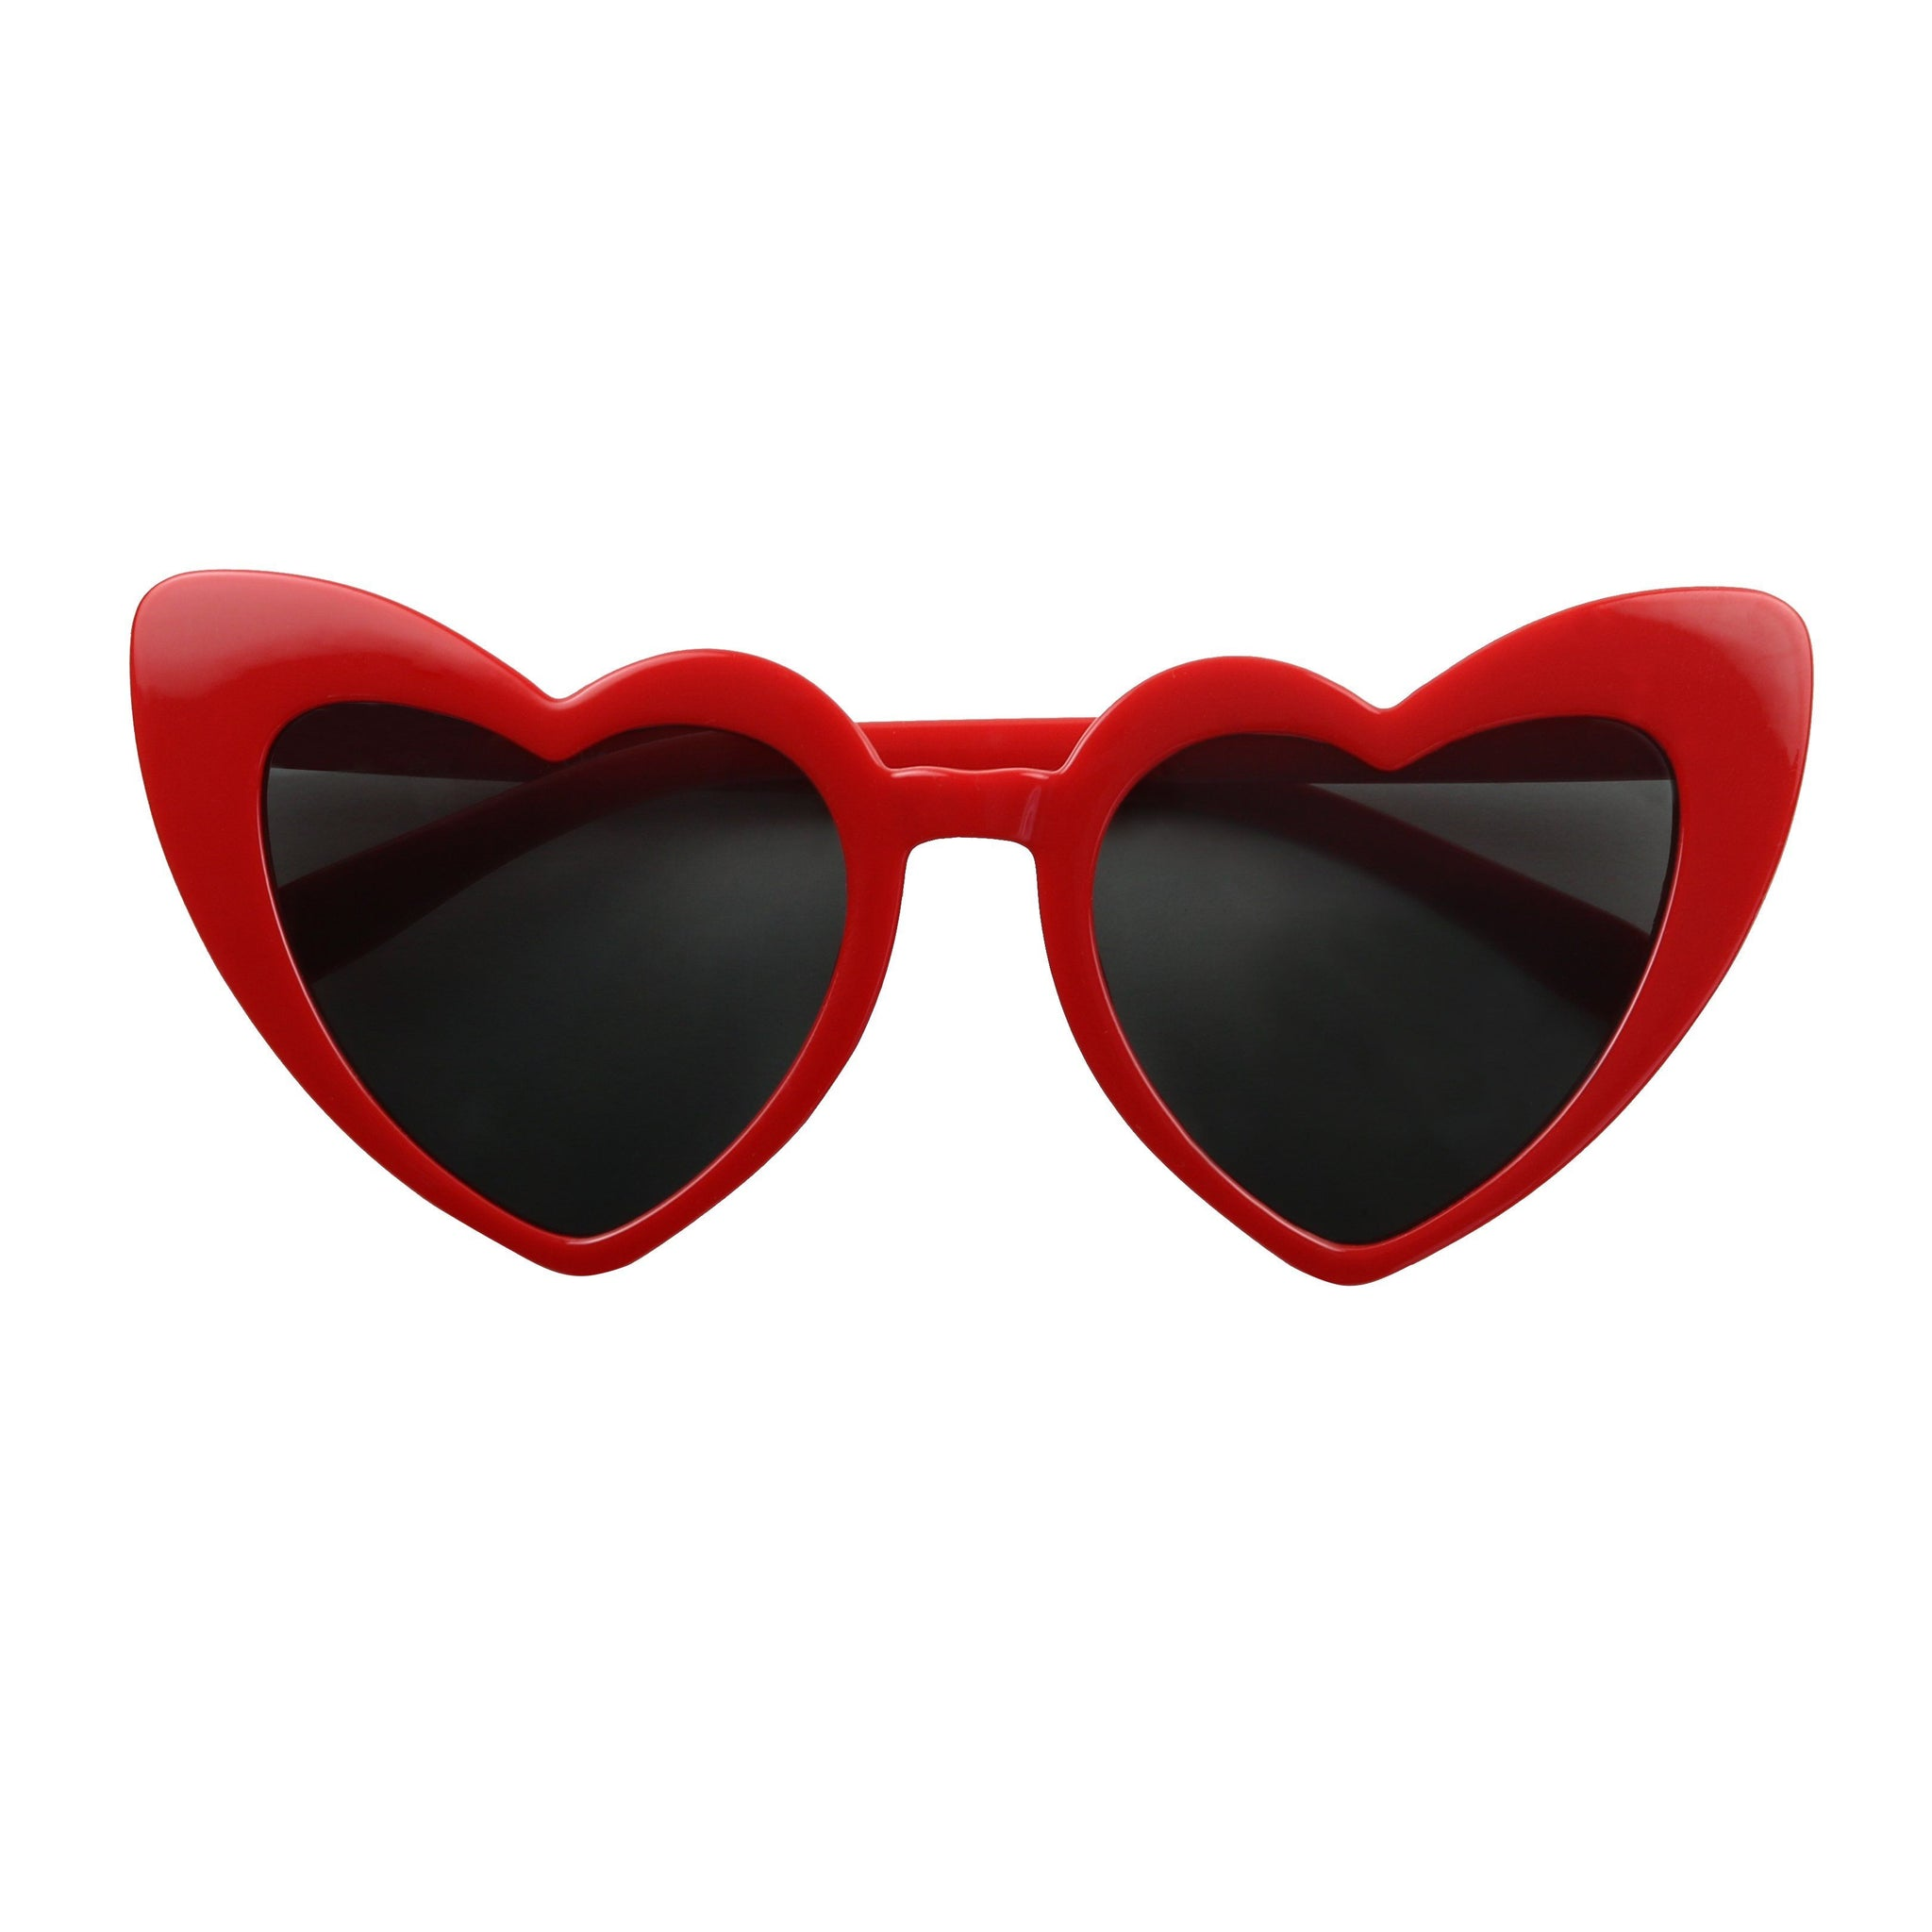 SAINT Heart Shaped Oversized Tinted Sunglasses - ShadyVEU